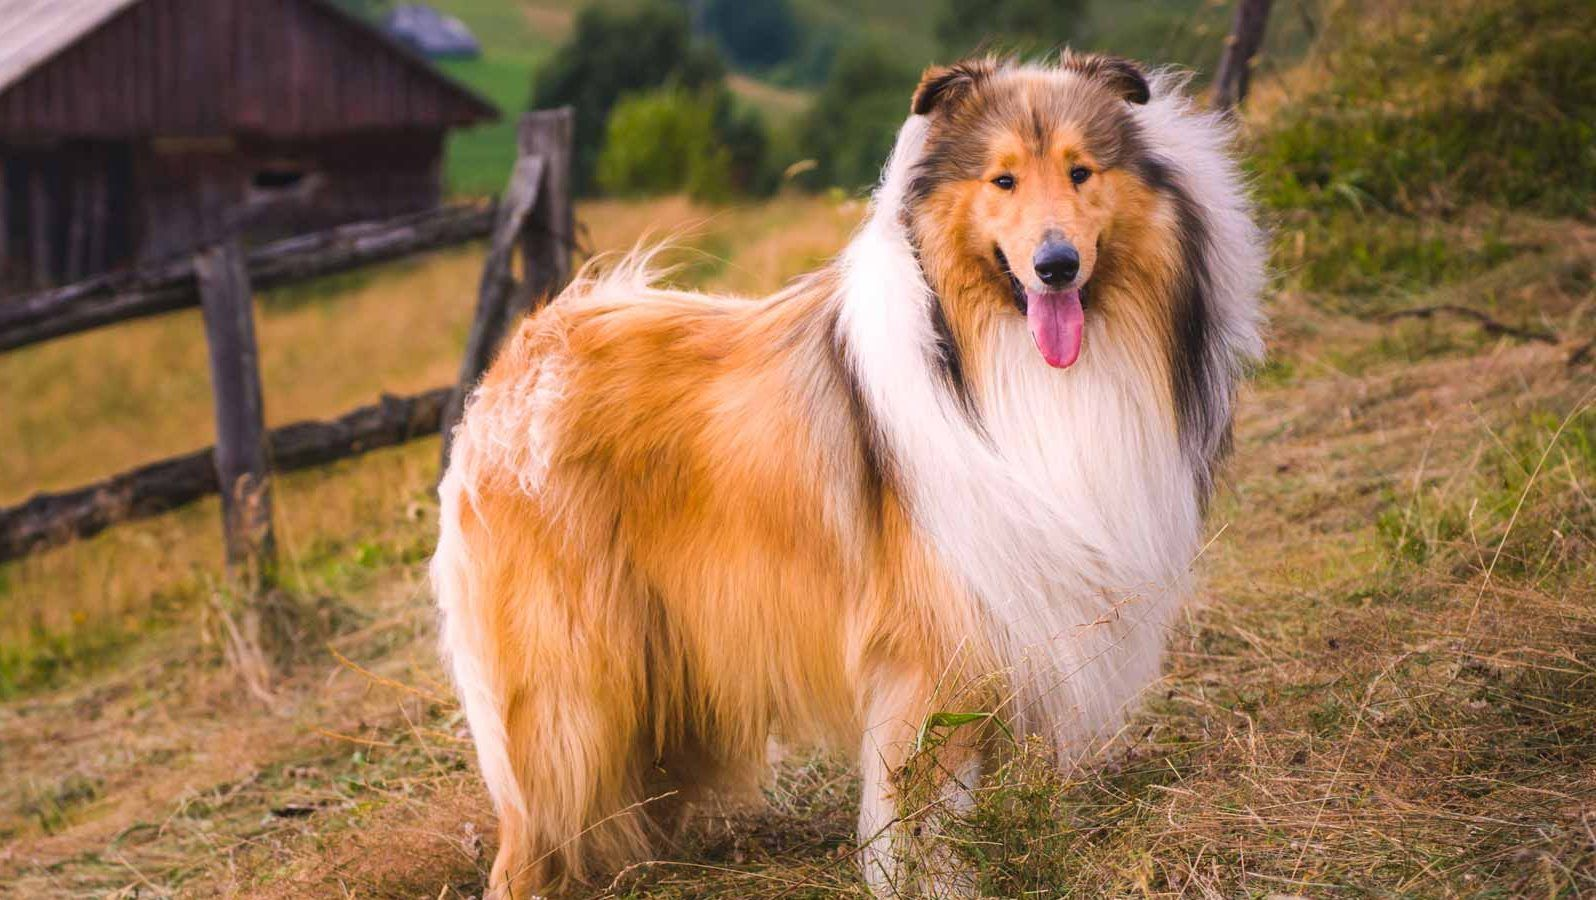 Rough Collie Puppies For Sale In Ny Https Ift Tt 35yopek In 2020 Collie Puppies For Sale Rough Collie Puppy Collie Puppies